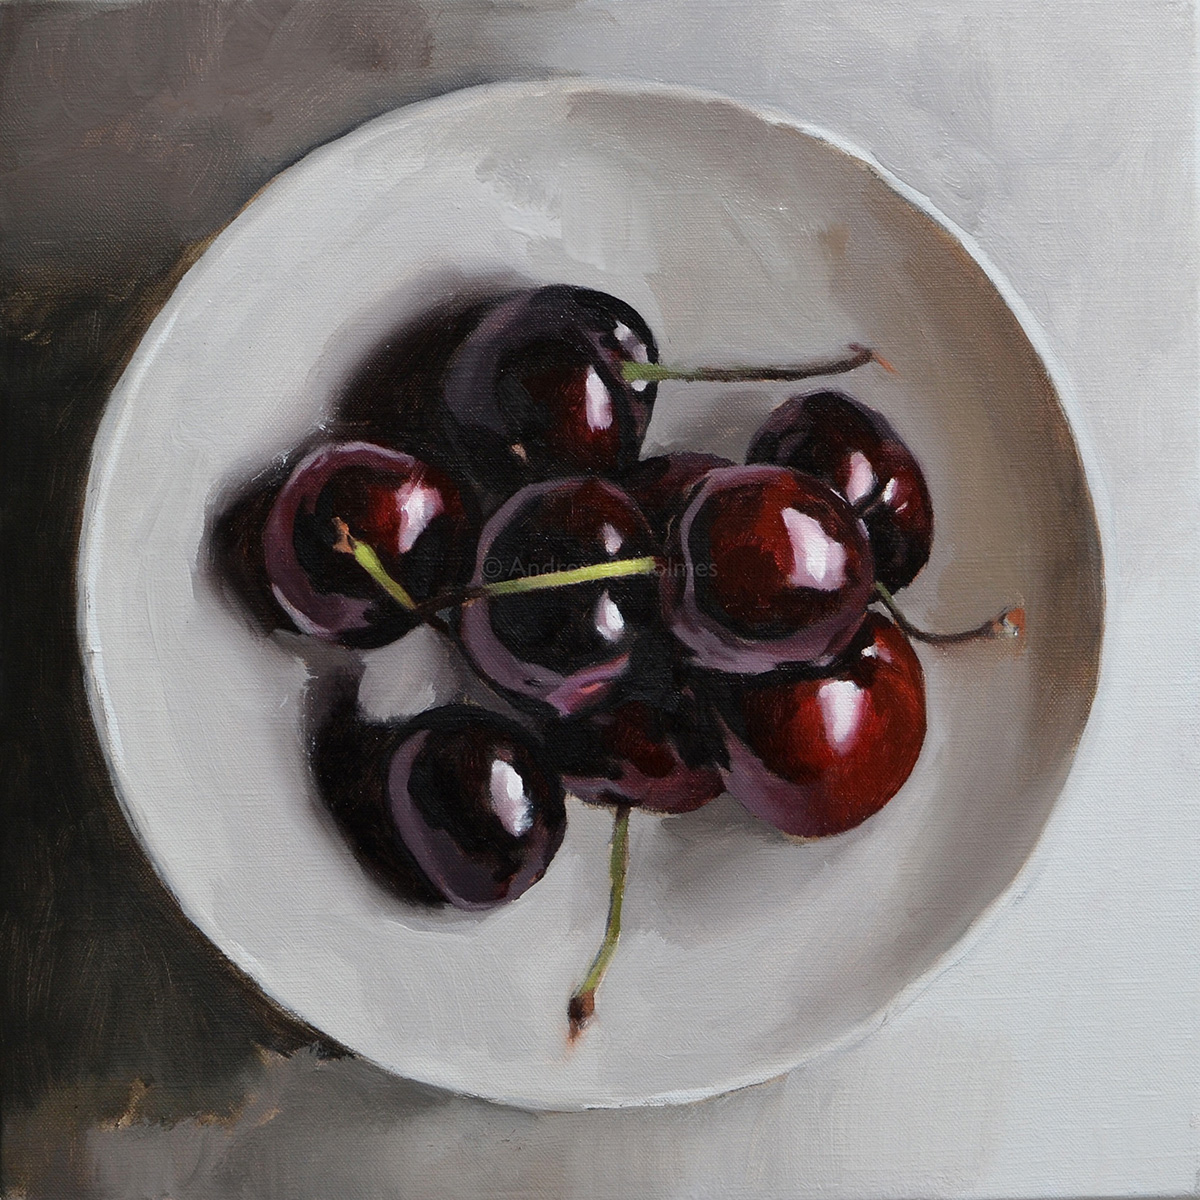 A Tarte and some Cherries at the Frivoli Gallery